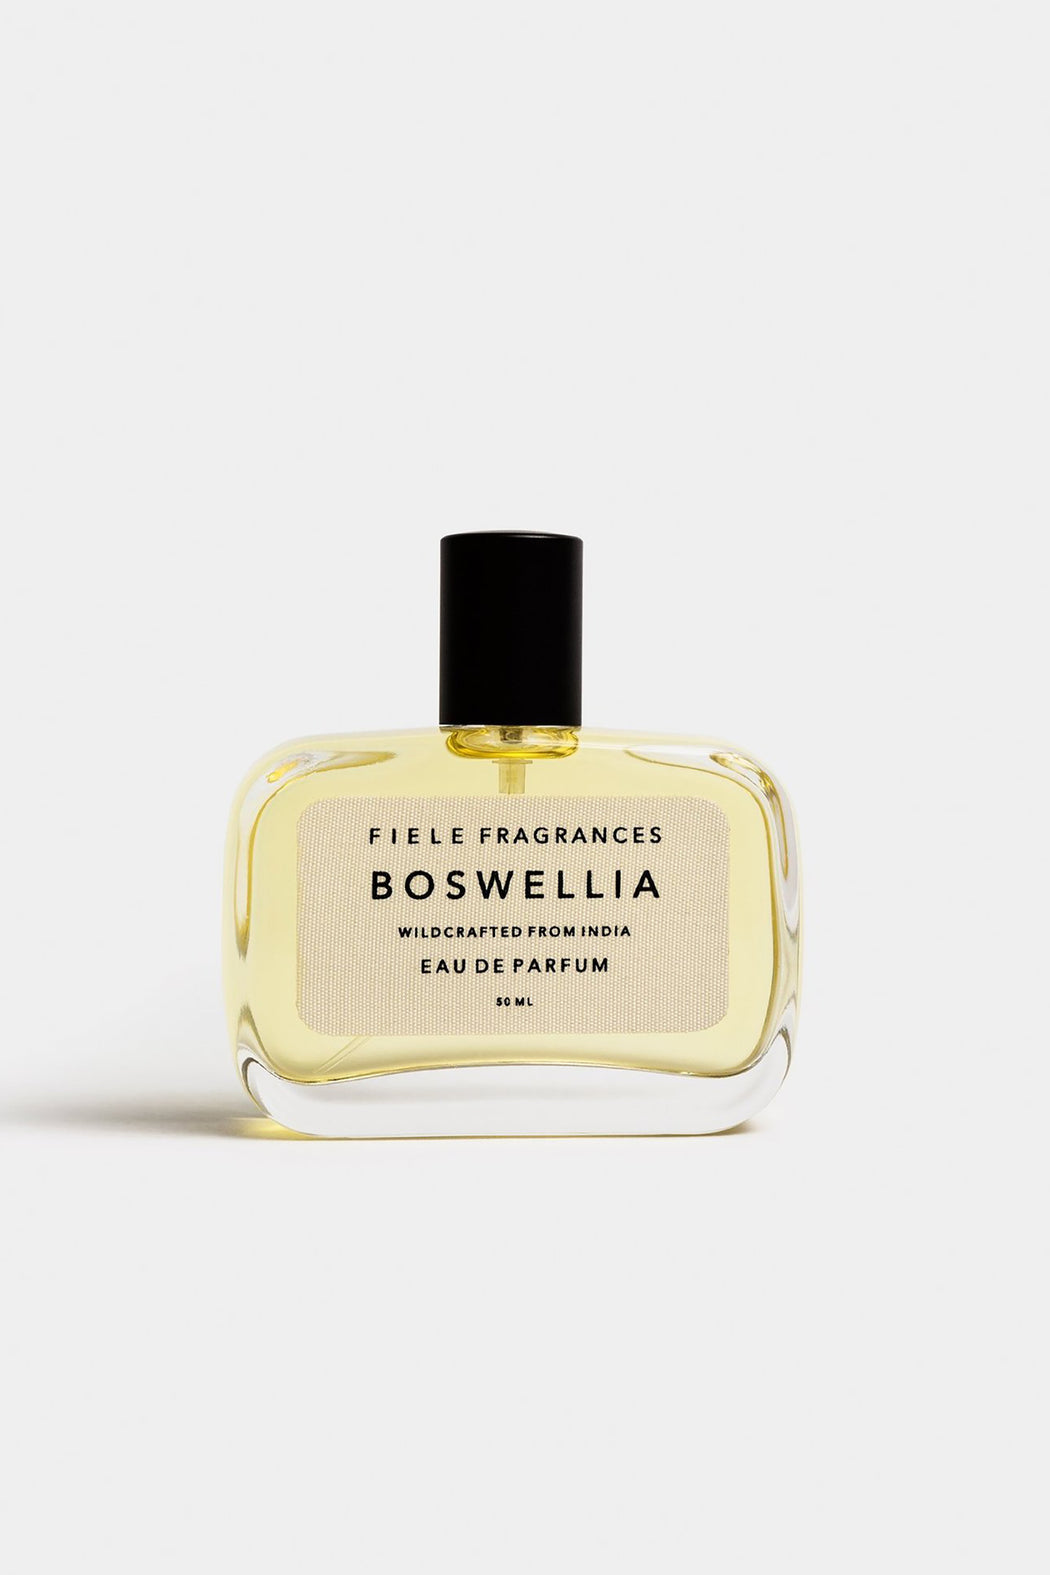 Fiele Fragrances | Boswellia Eau de Parfum | Hazel & Rose